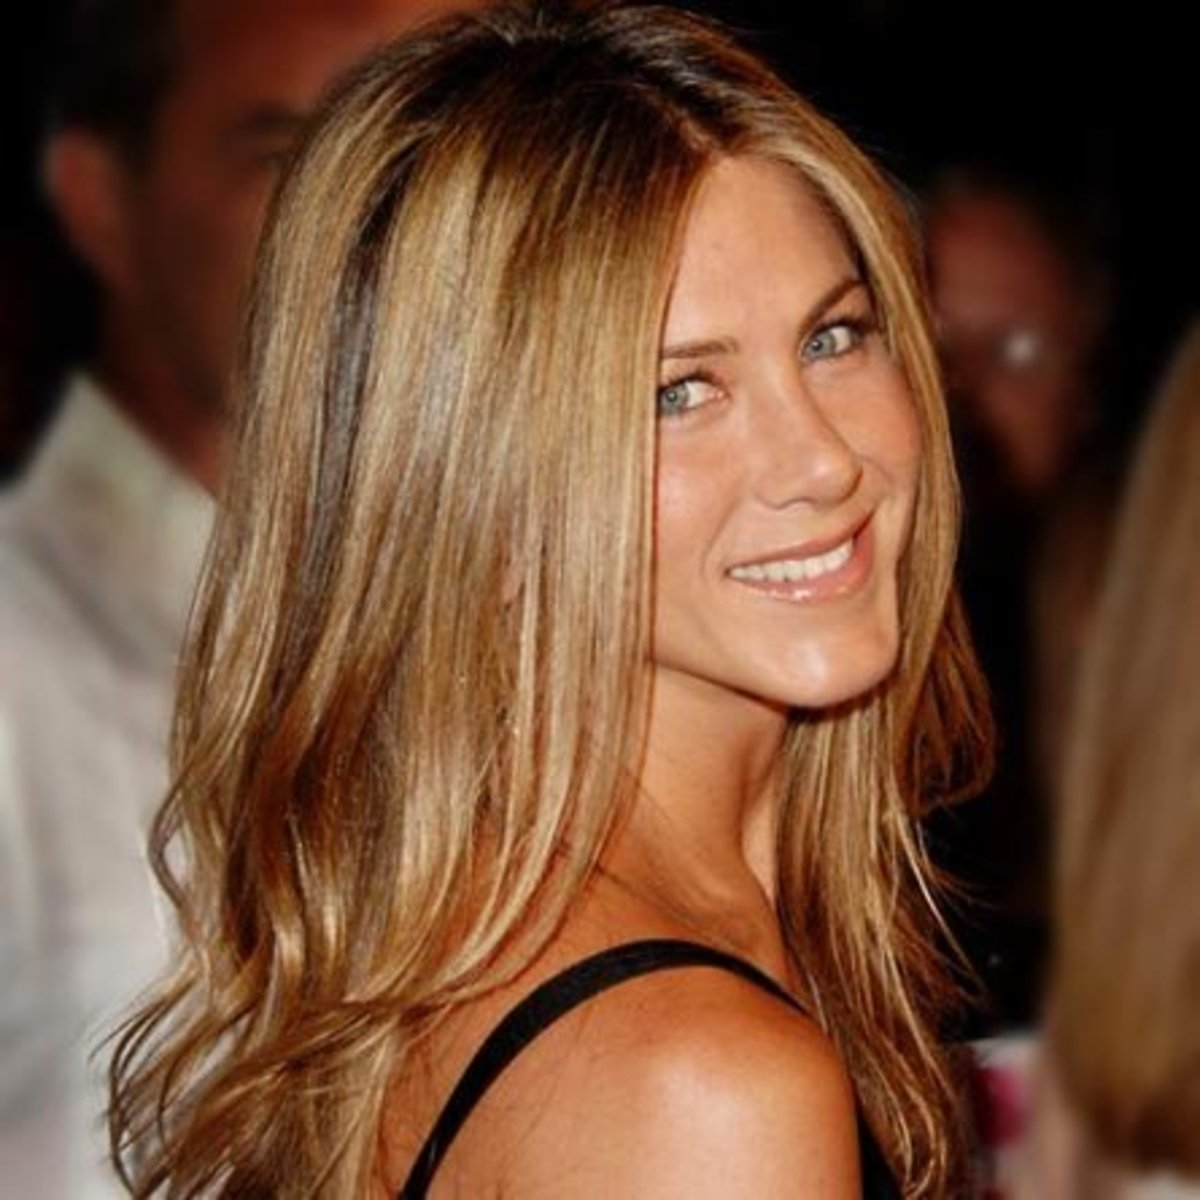 Jennifer Aniston should know better than to wear her hair long like this at 50.